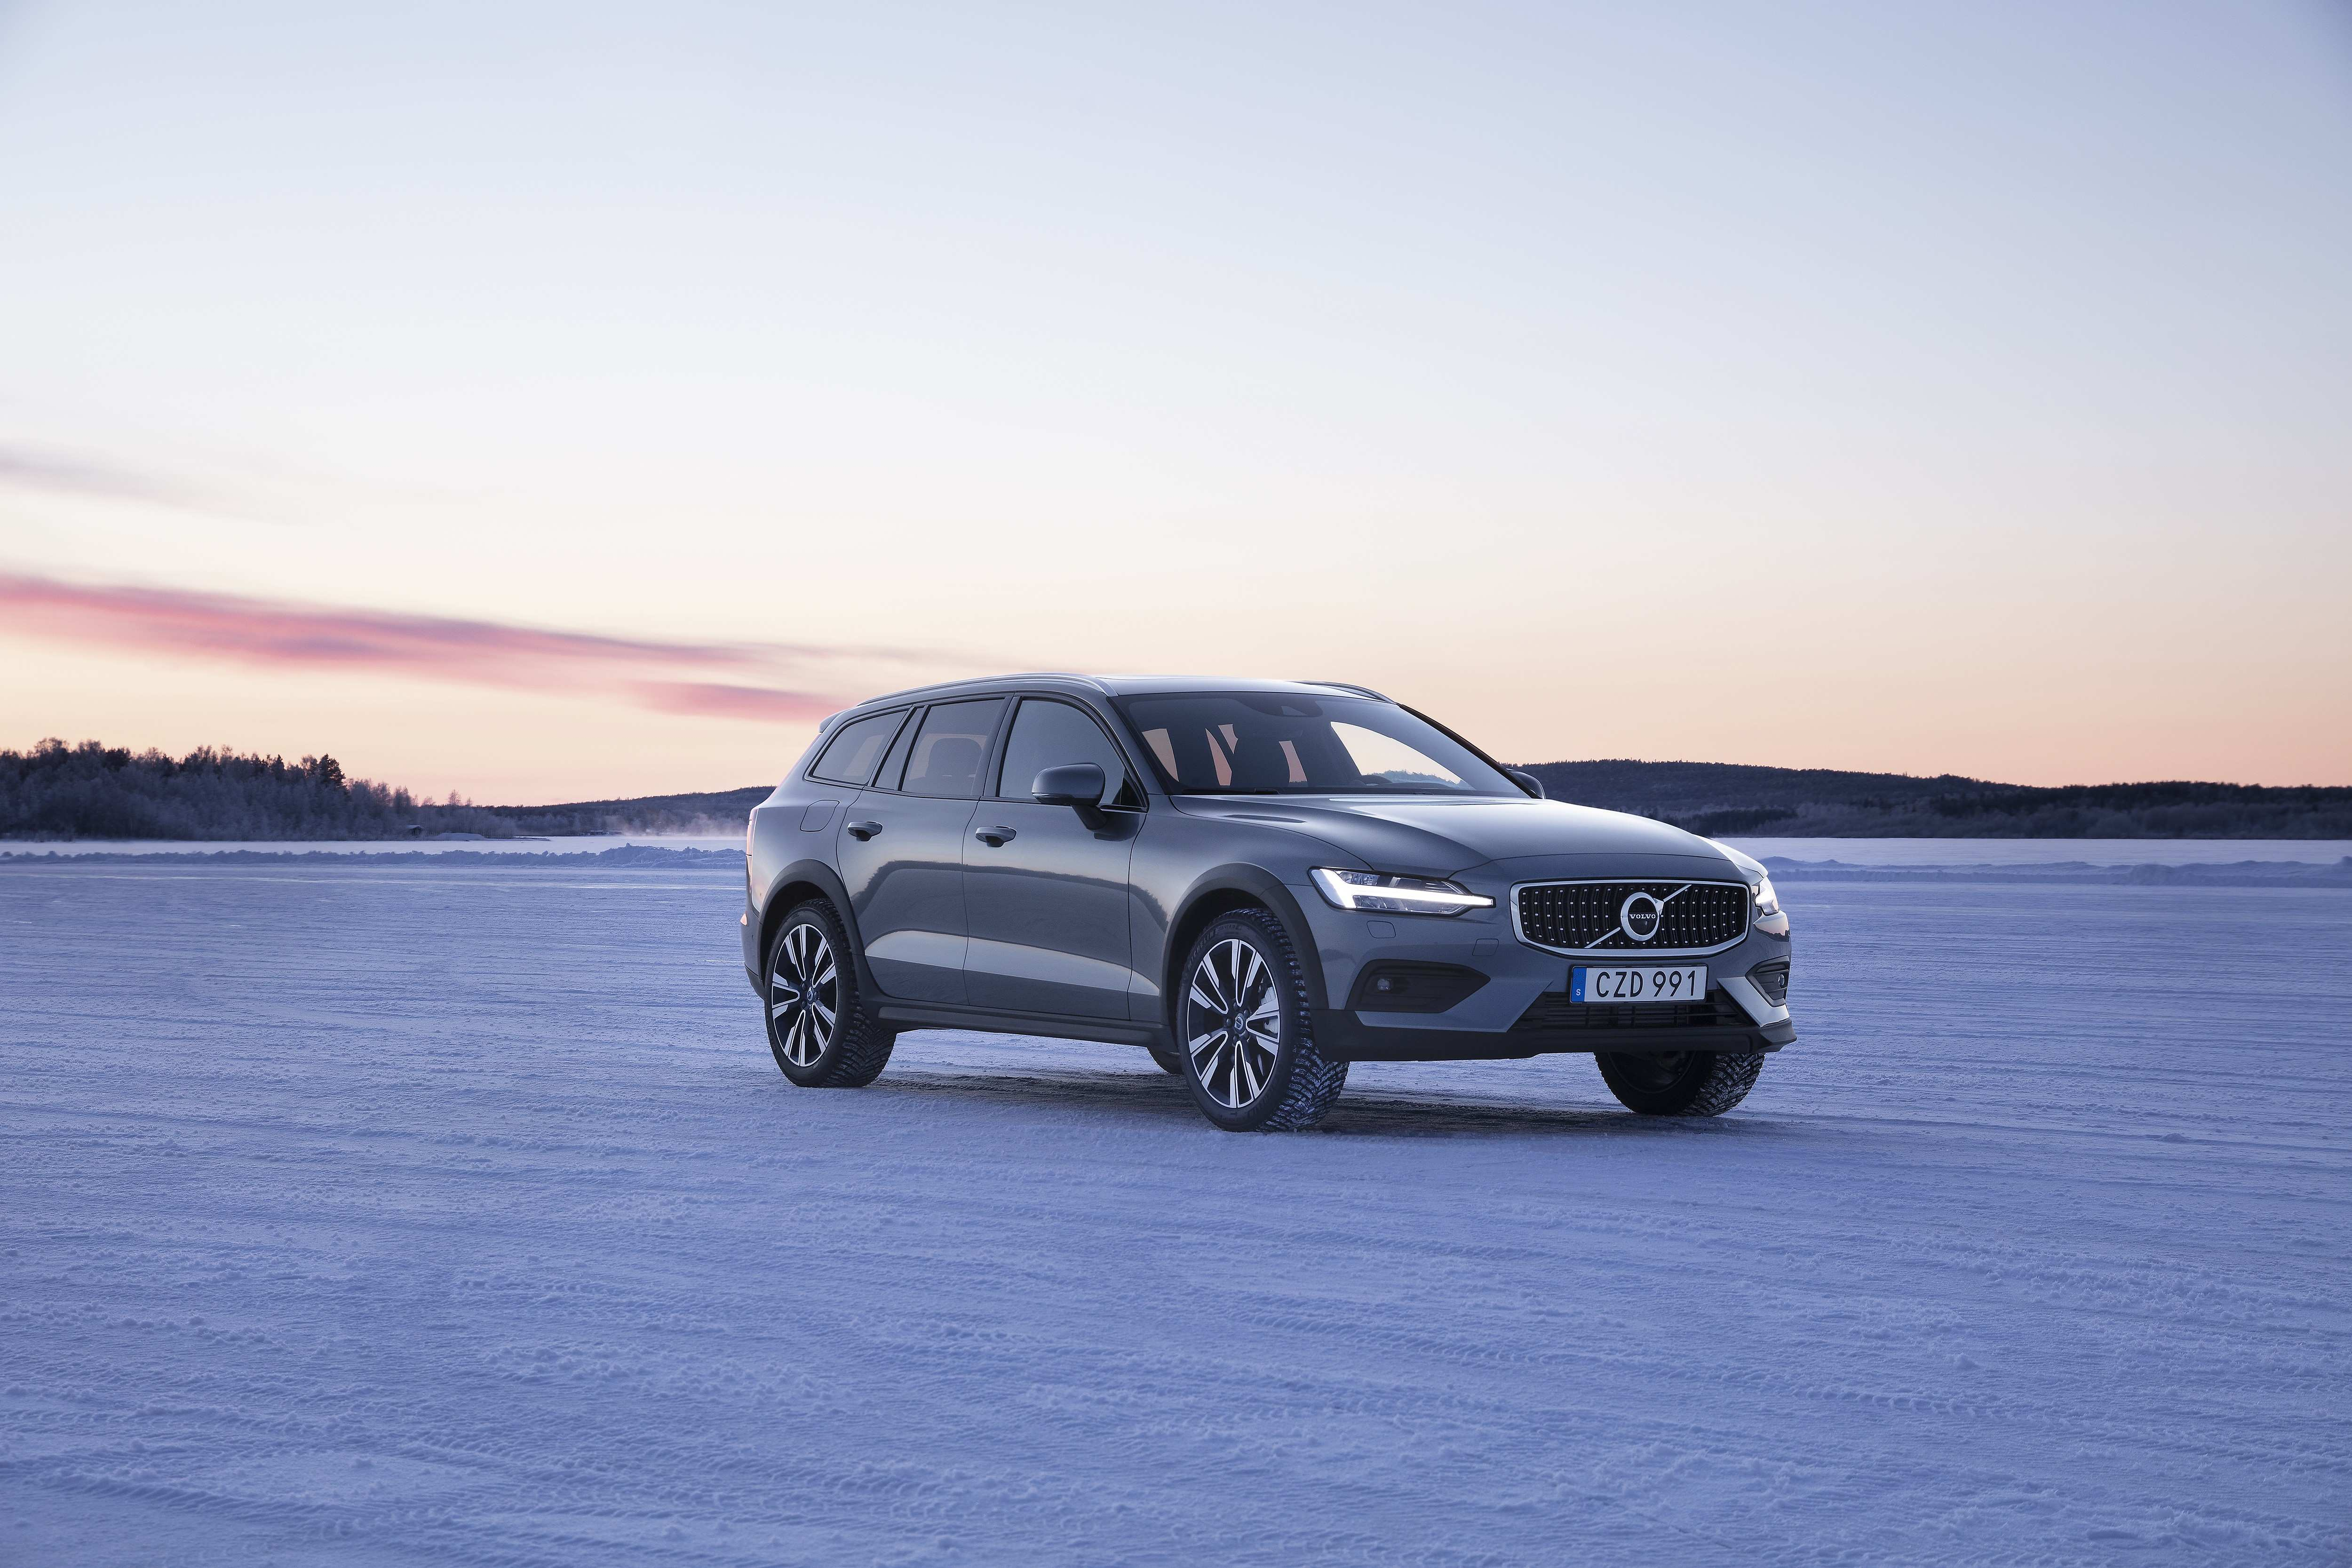 69 The Best 2020 Volvo V60 Cross Country Research New